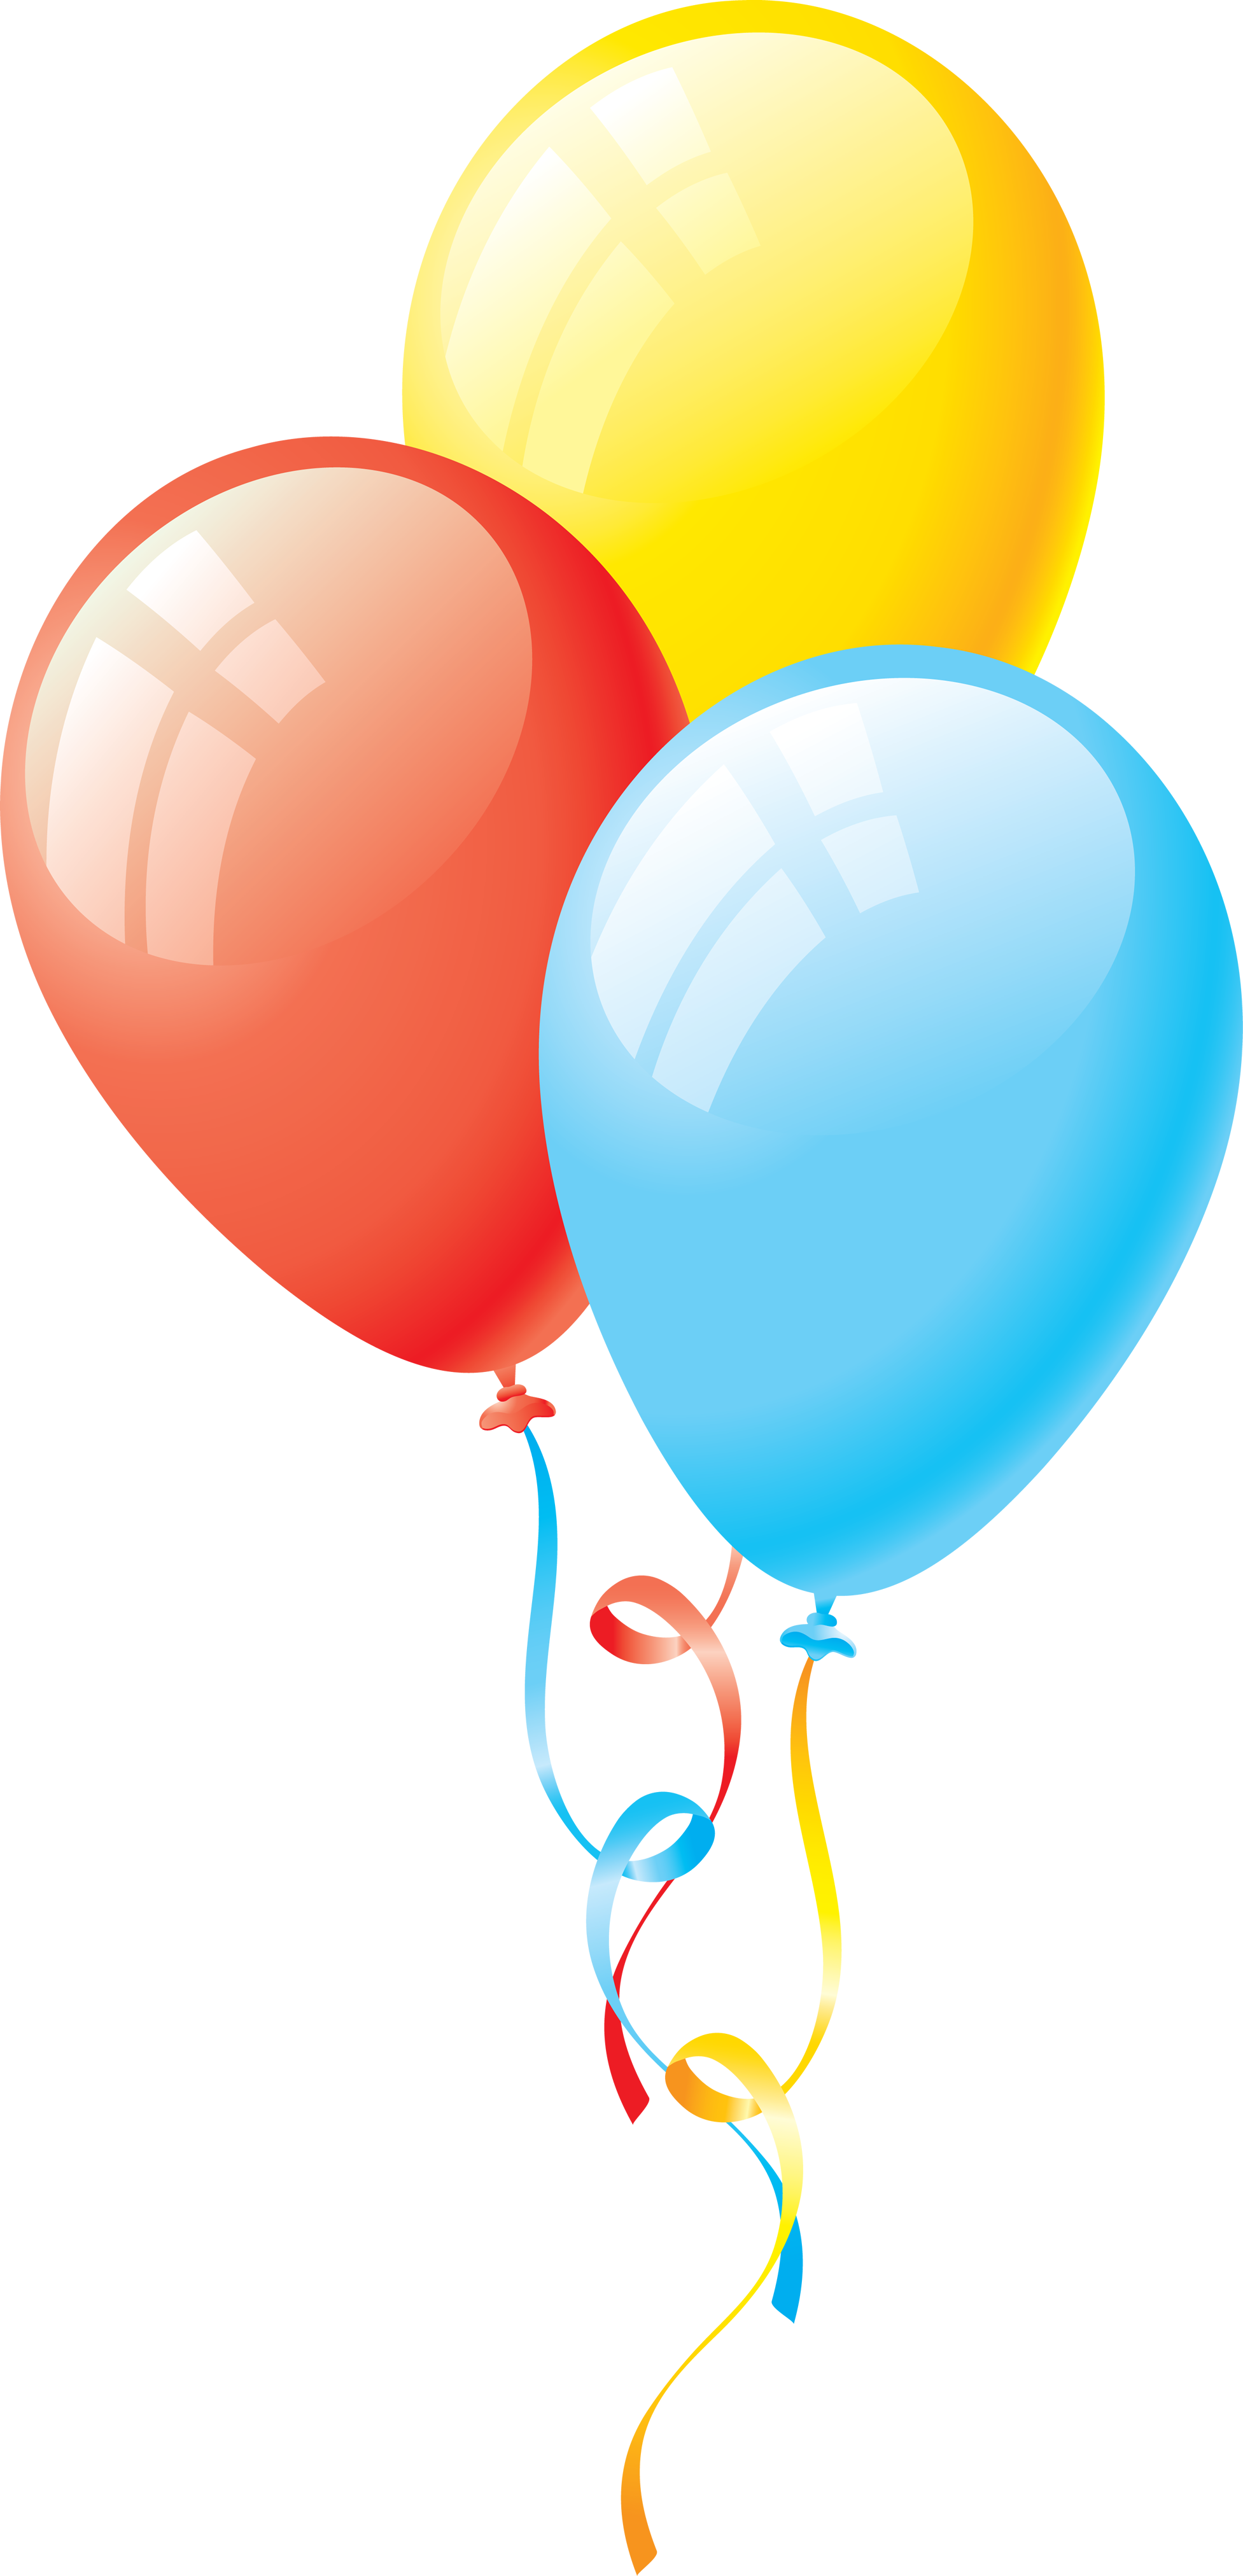 birthday balloon clipart at getdrawings com free for personal use rh getdrawings com balloons clip art free download balloons clip art pictures